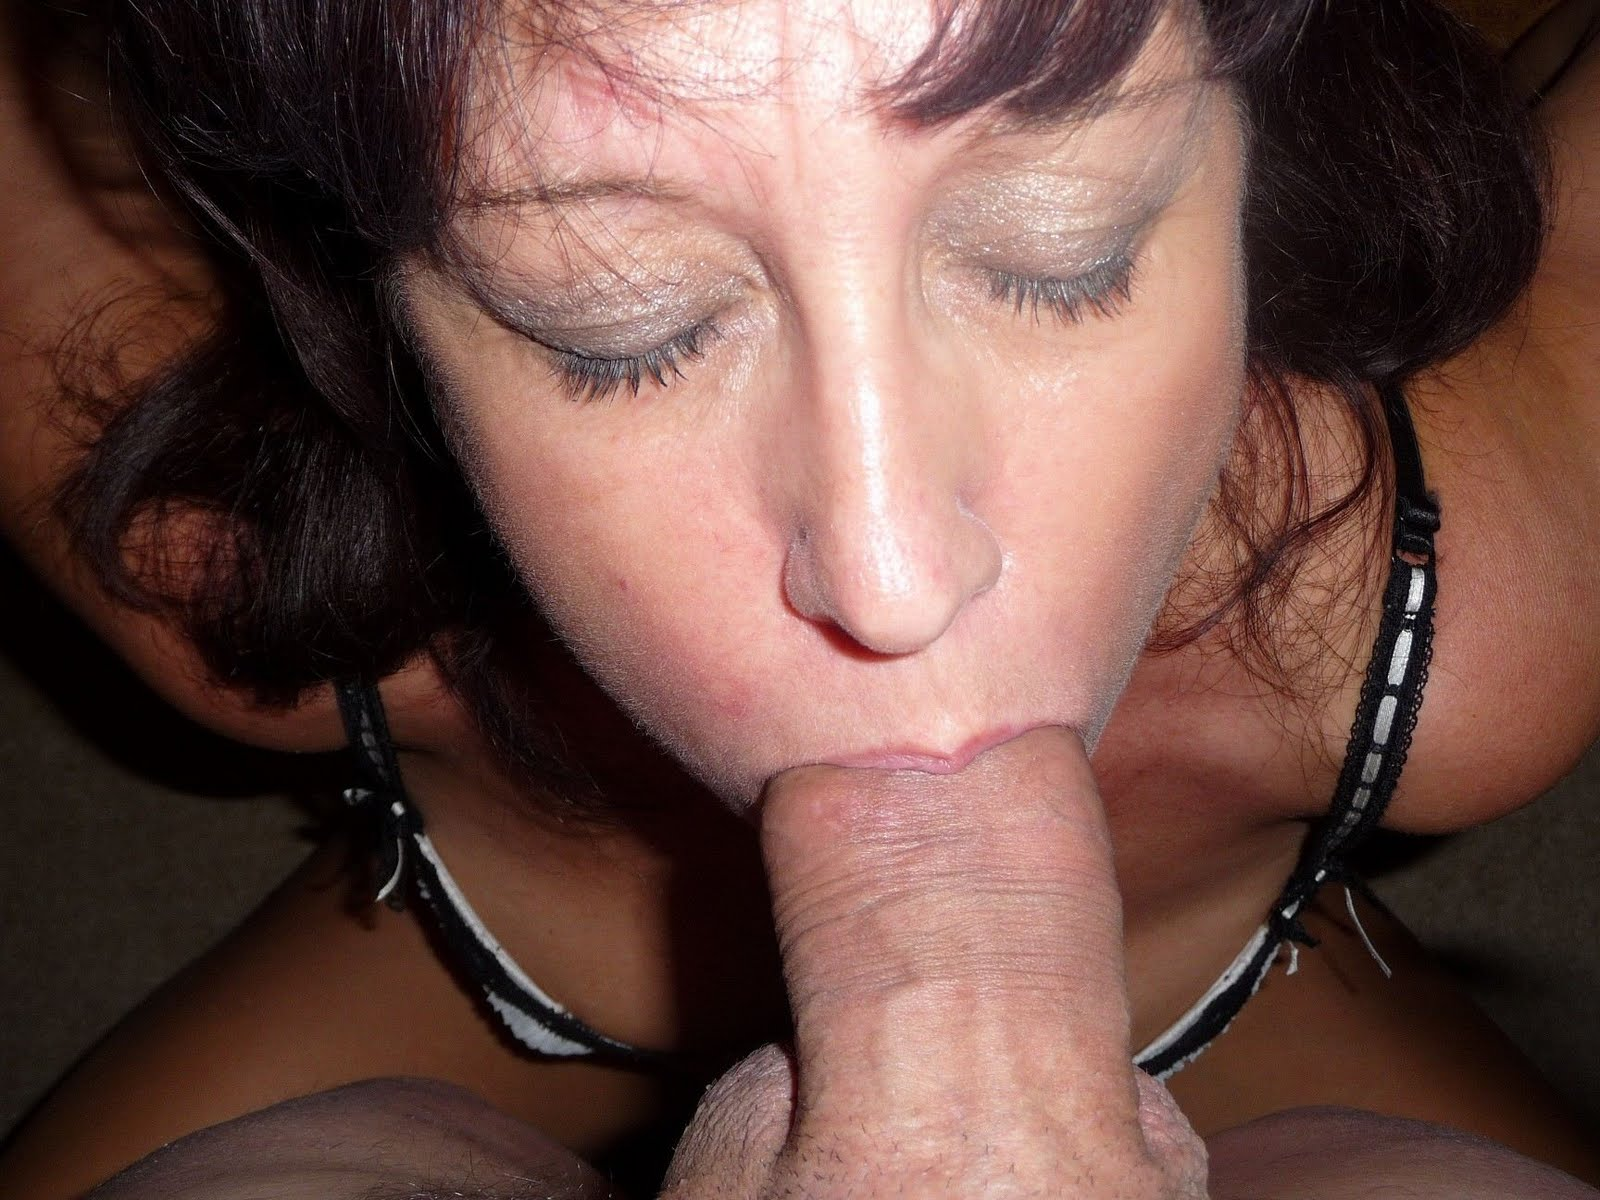 Quickly mature porn blowjobs pics your place